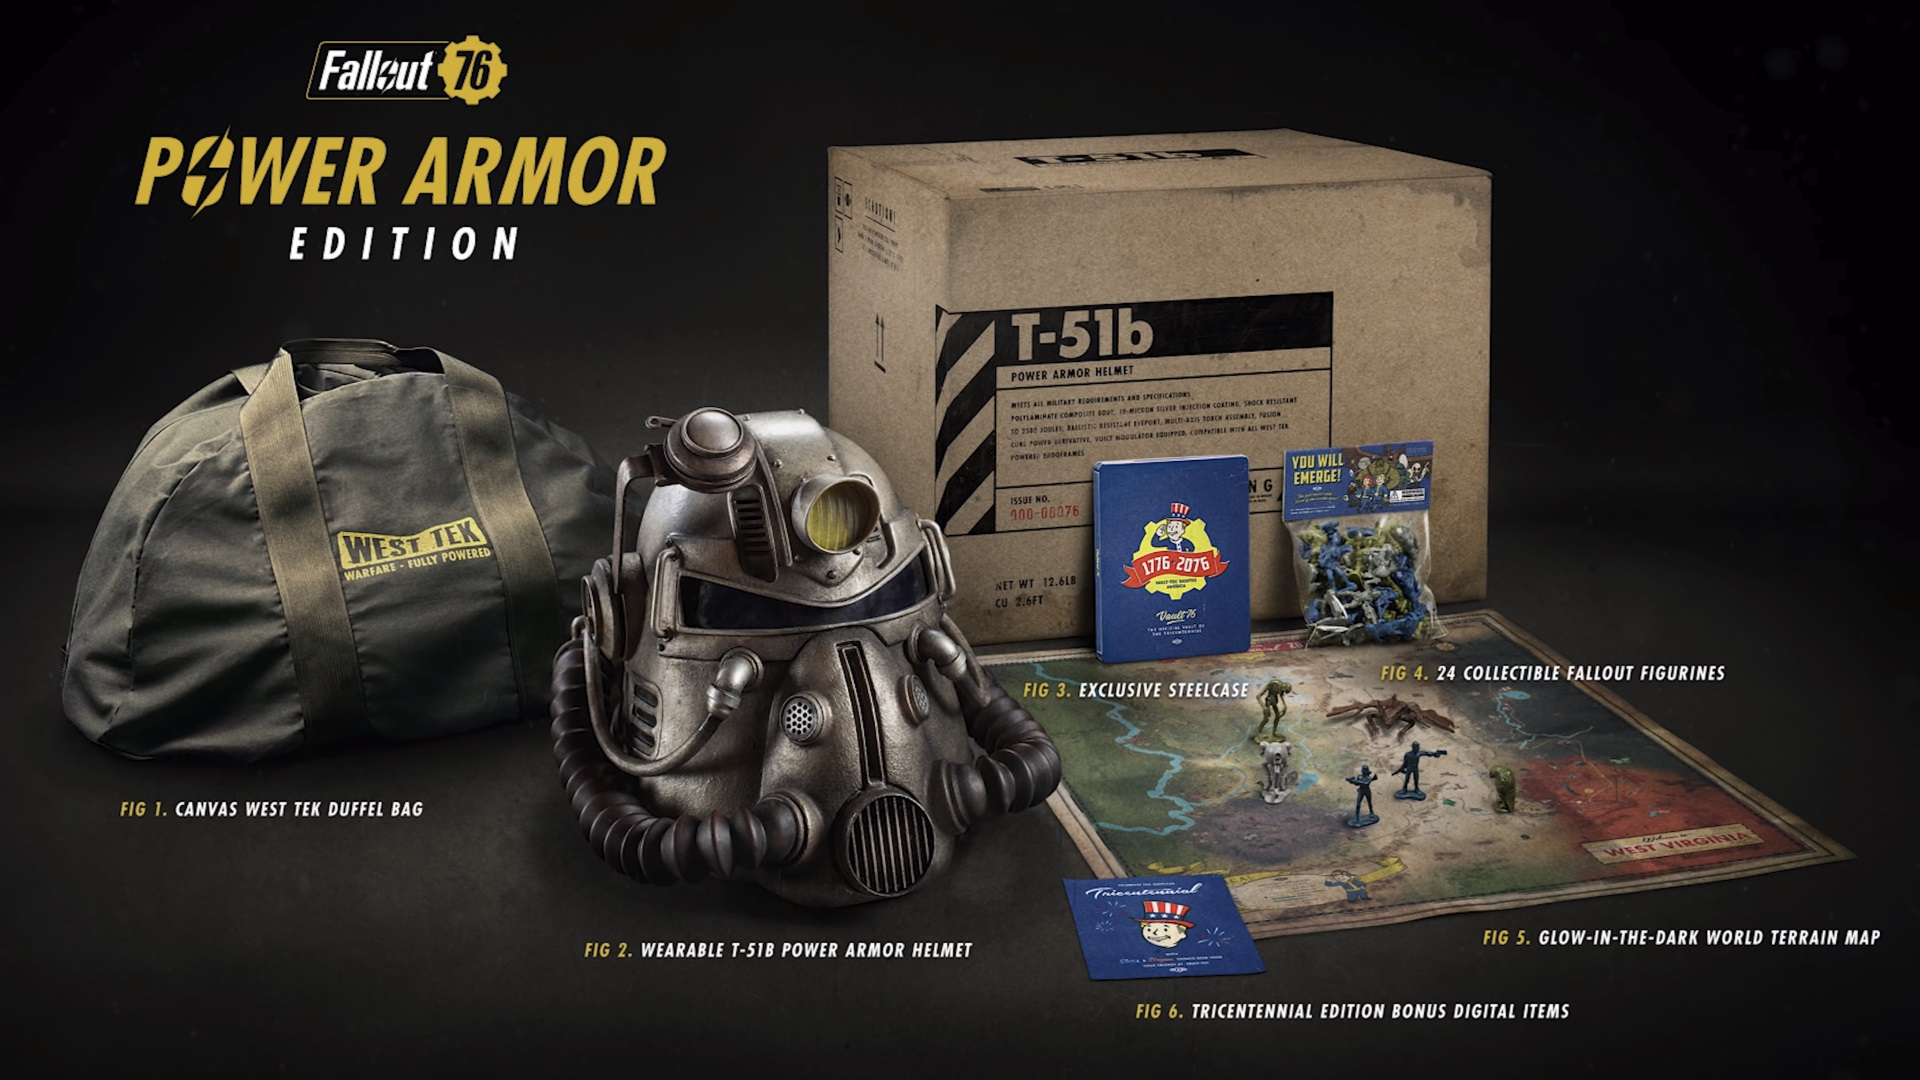 Fallout 76 collector's edition contents revealed, pre-order for beta